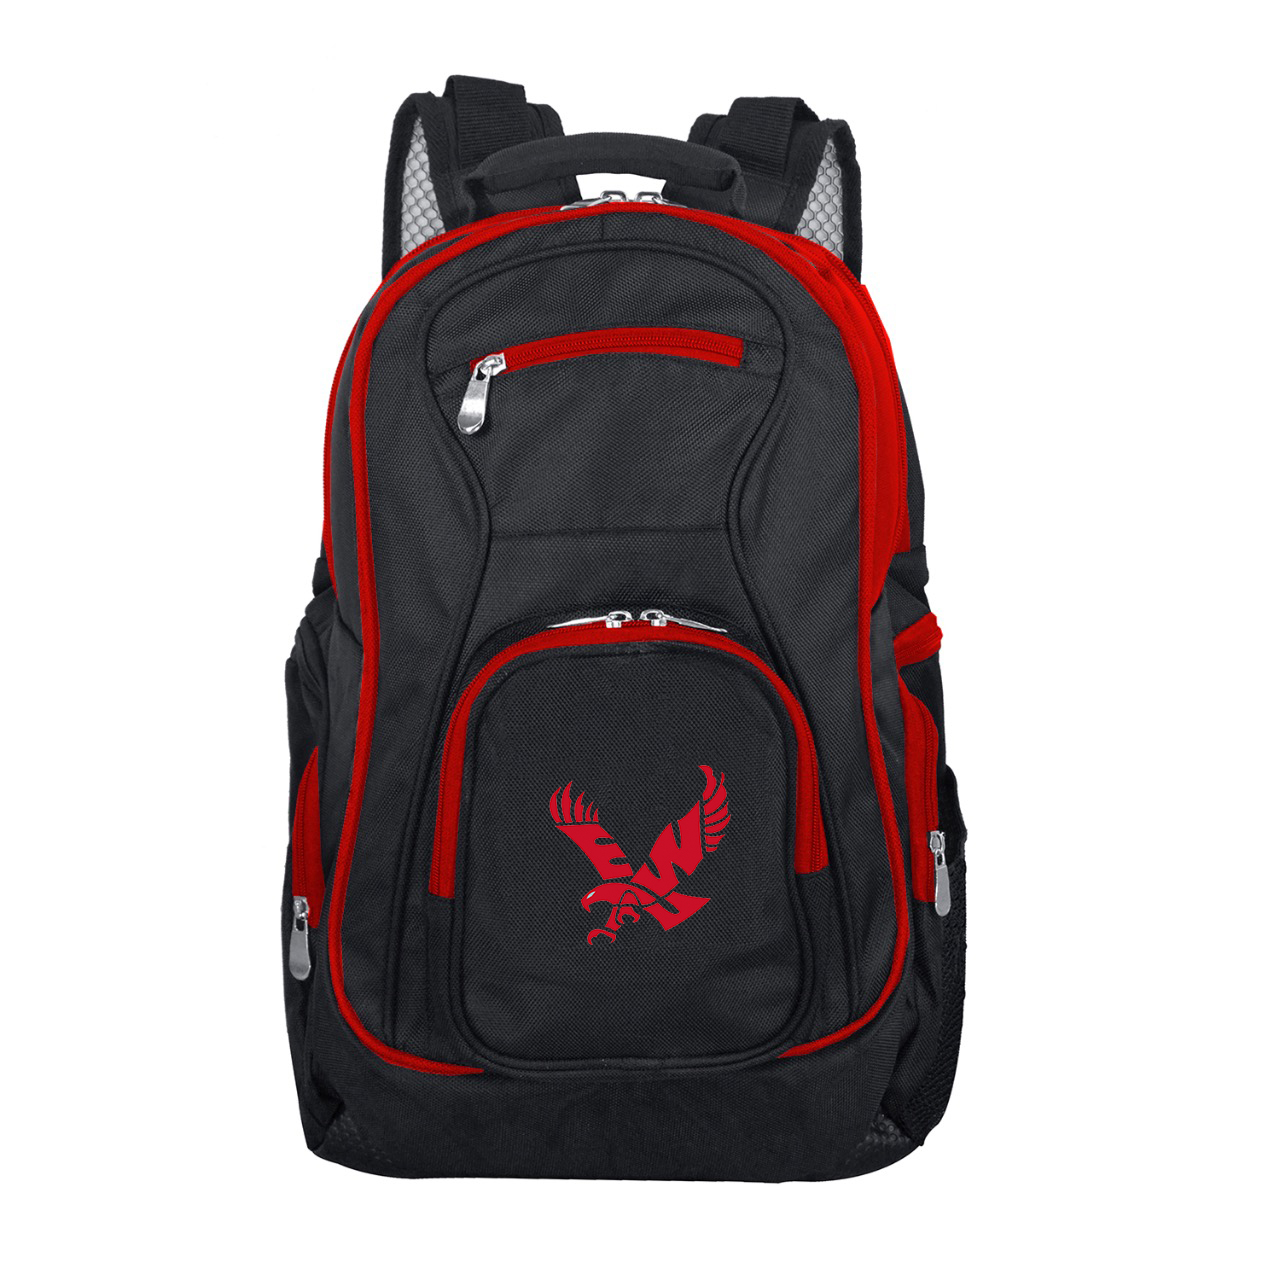 NCAA Eastern Washington Eagles Premium Laptop Backpack with Colored Trim